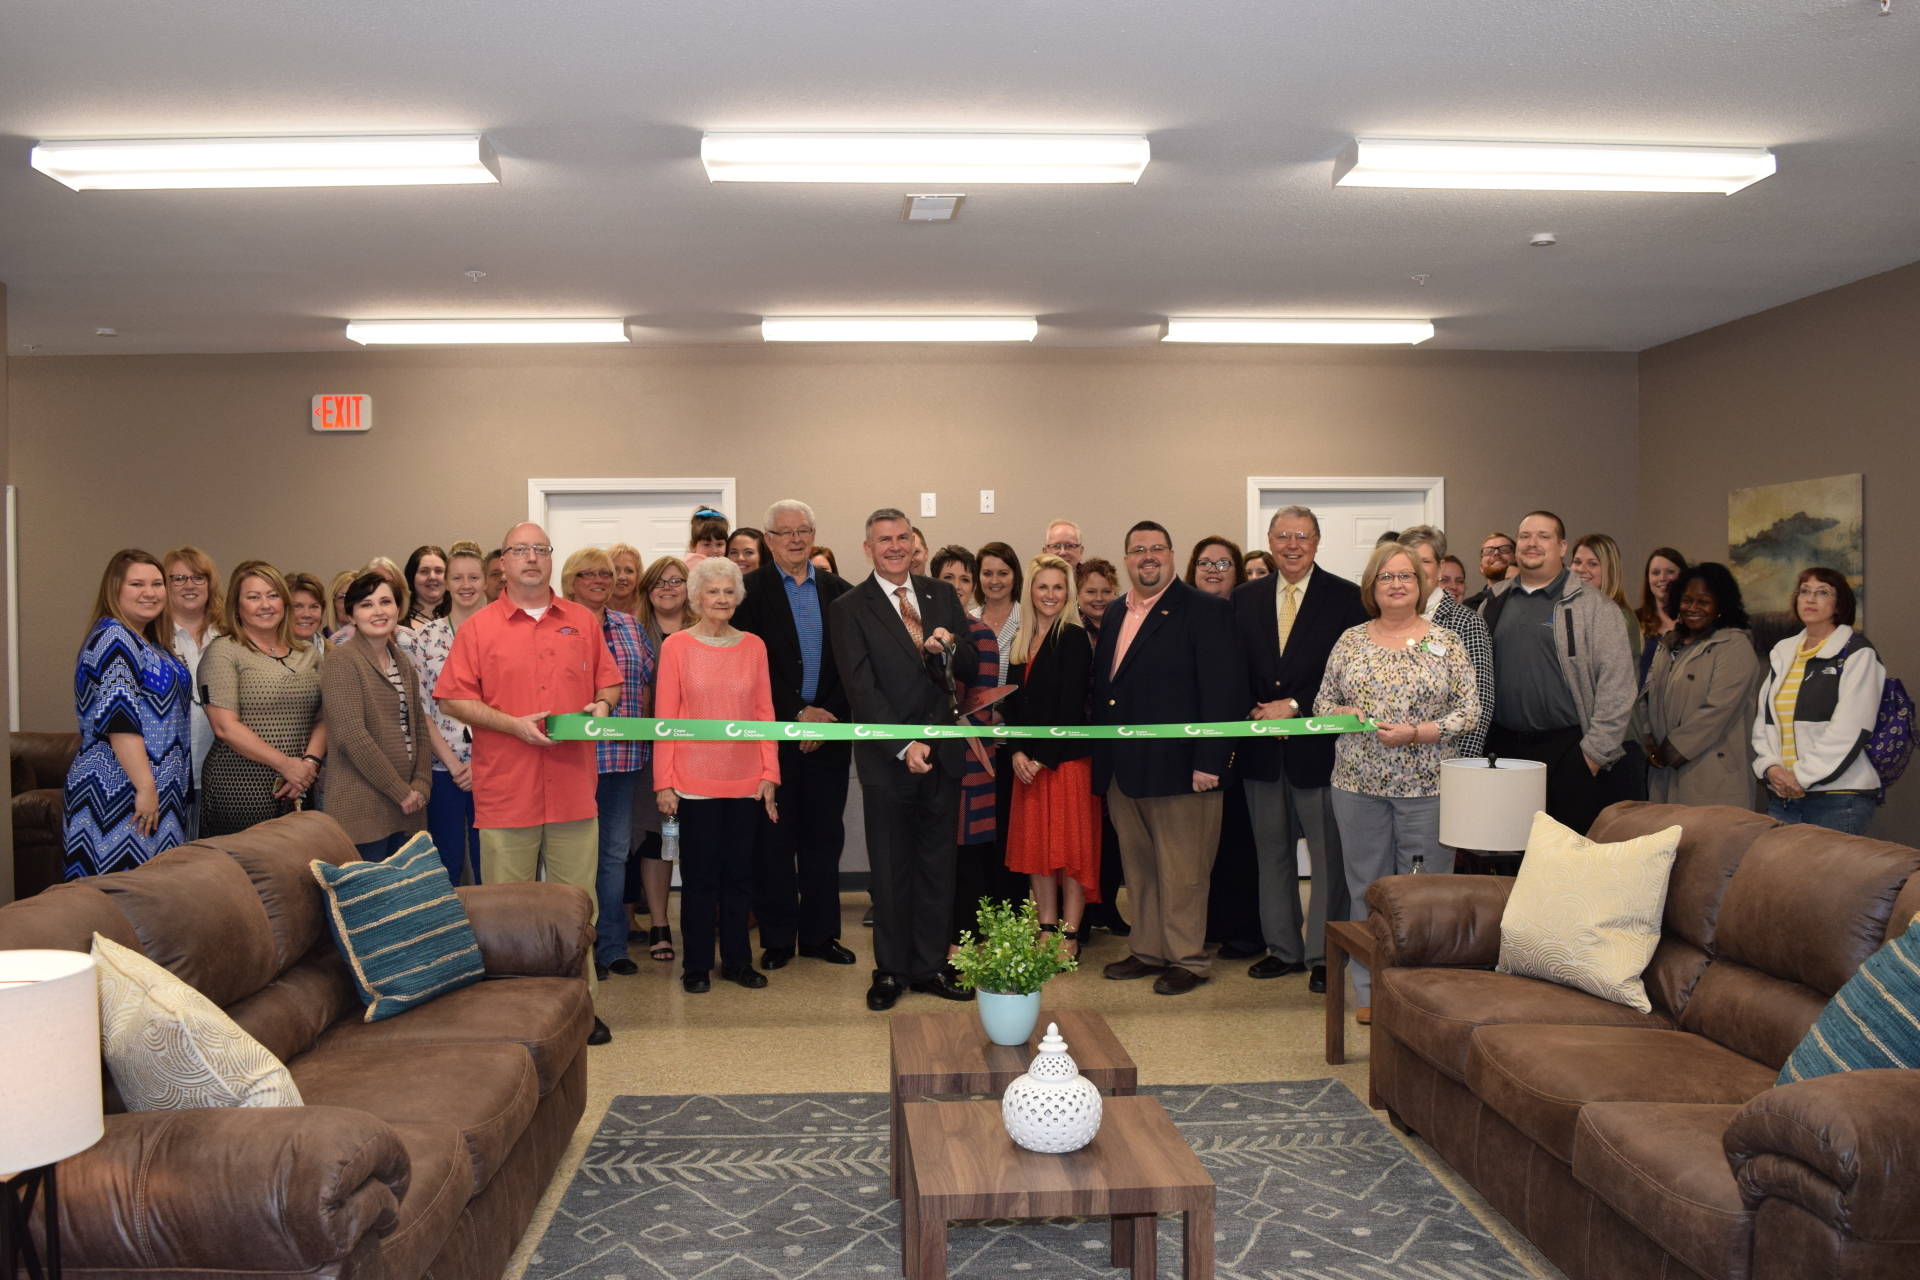 Ribbon Cutting at Serenity Pointe